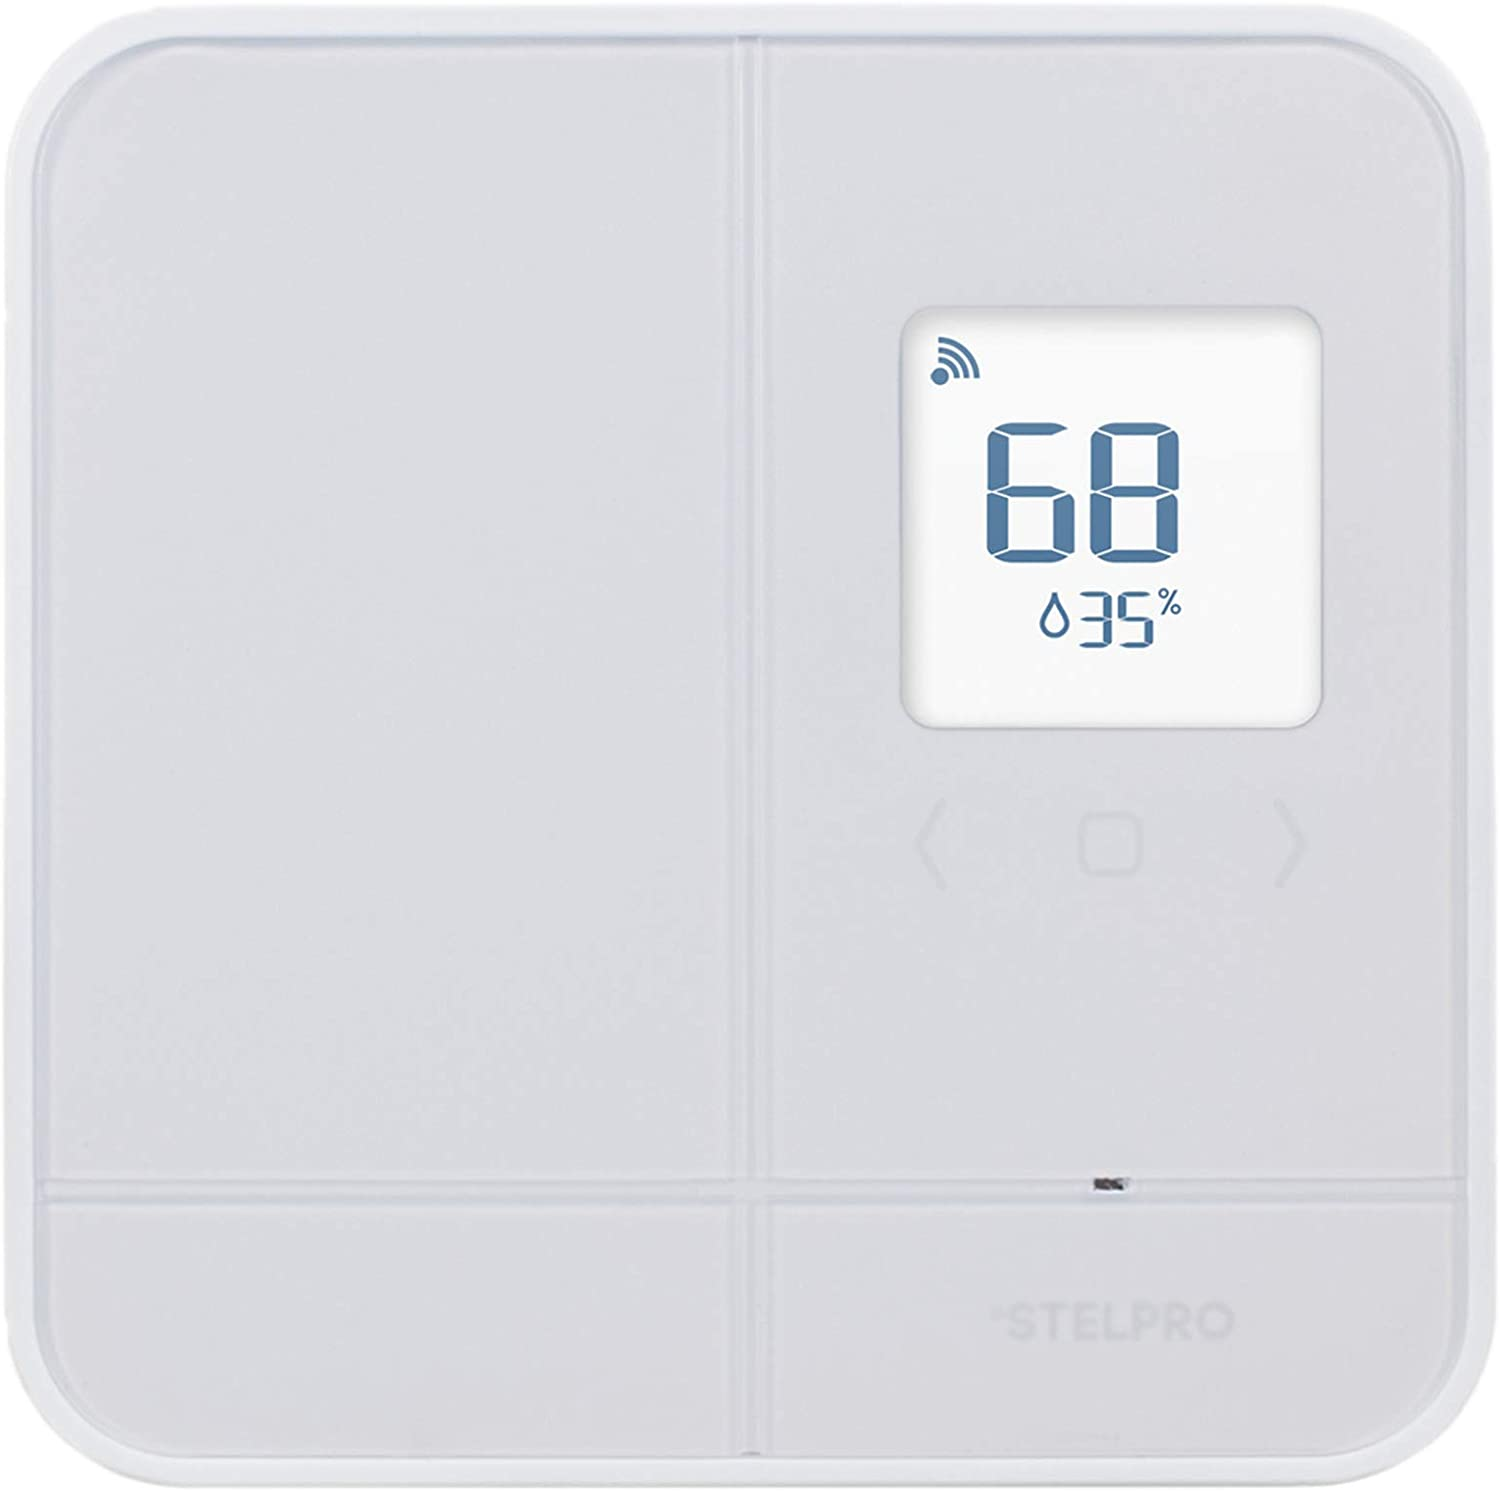 Stelpro ASMT402 Smart Home Thermostat to adds Maestro Connectivity to existing Line Voltage Electric Baseboards, Convectors, and Fan Heaters